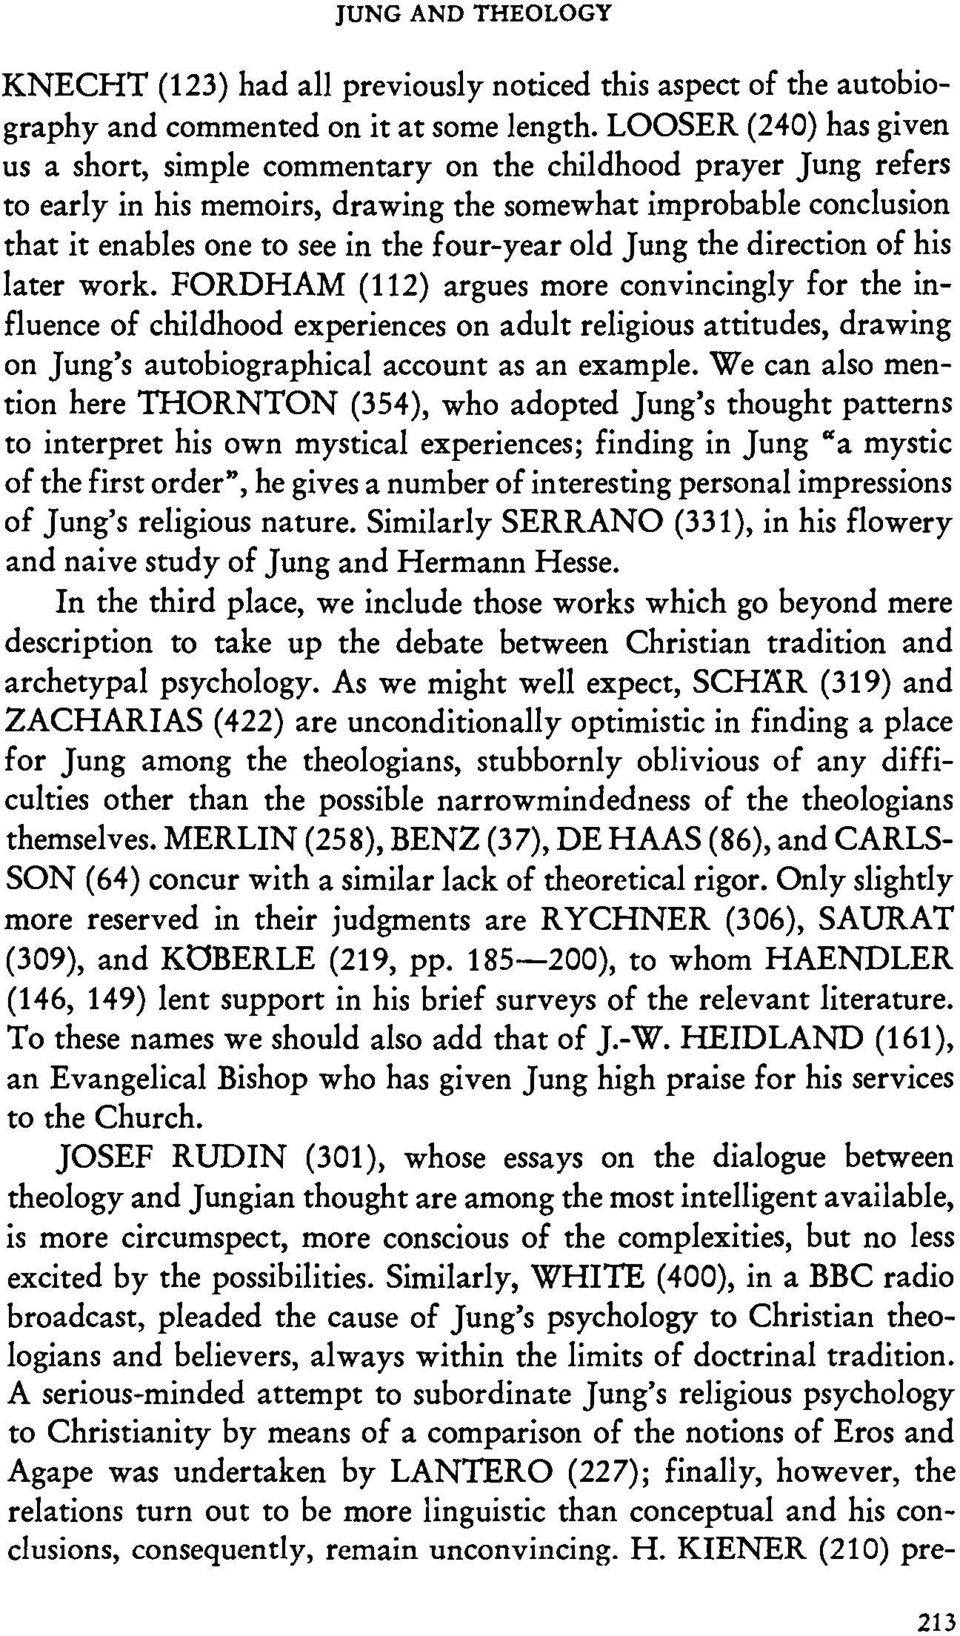 jung psychology and religion essay